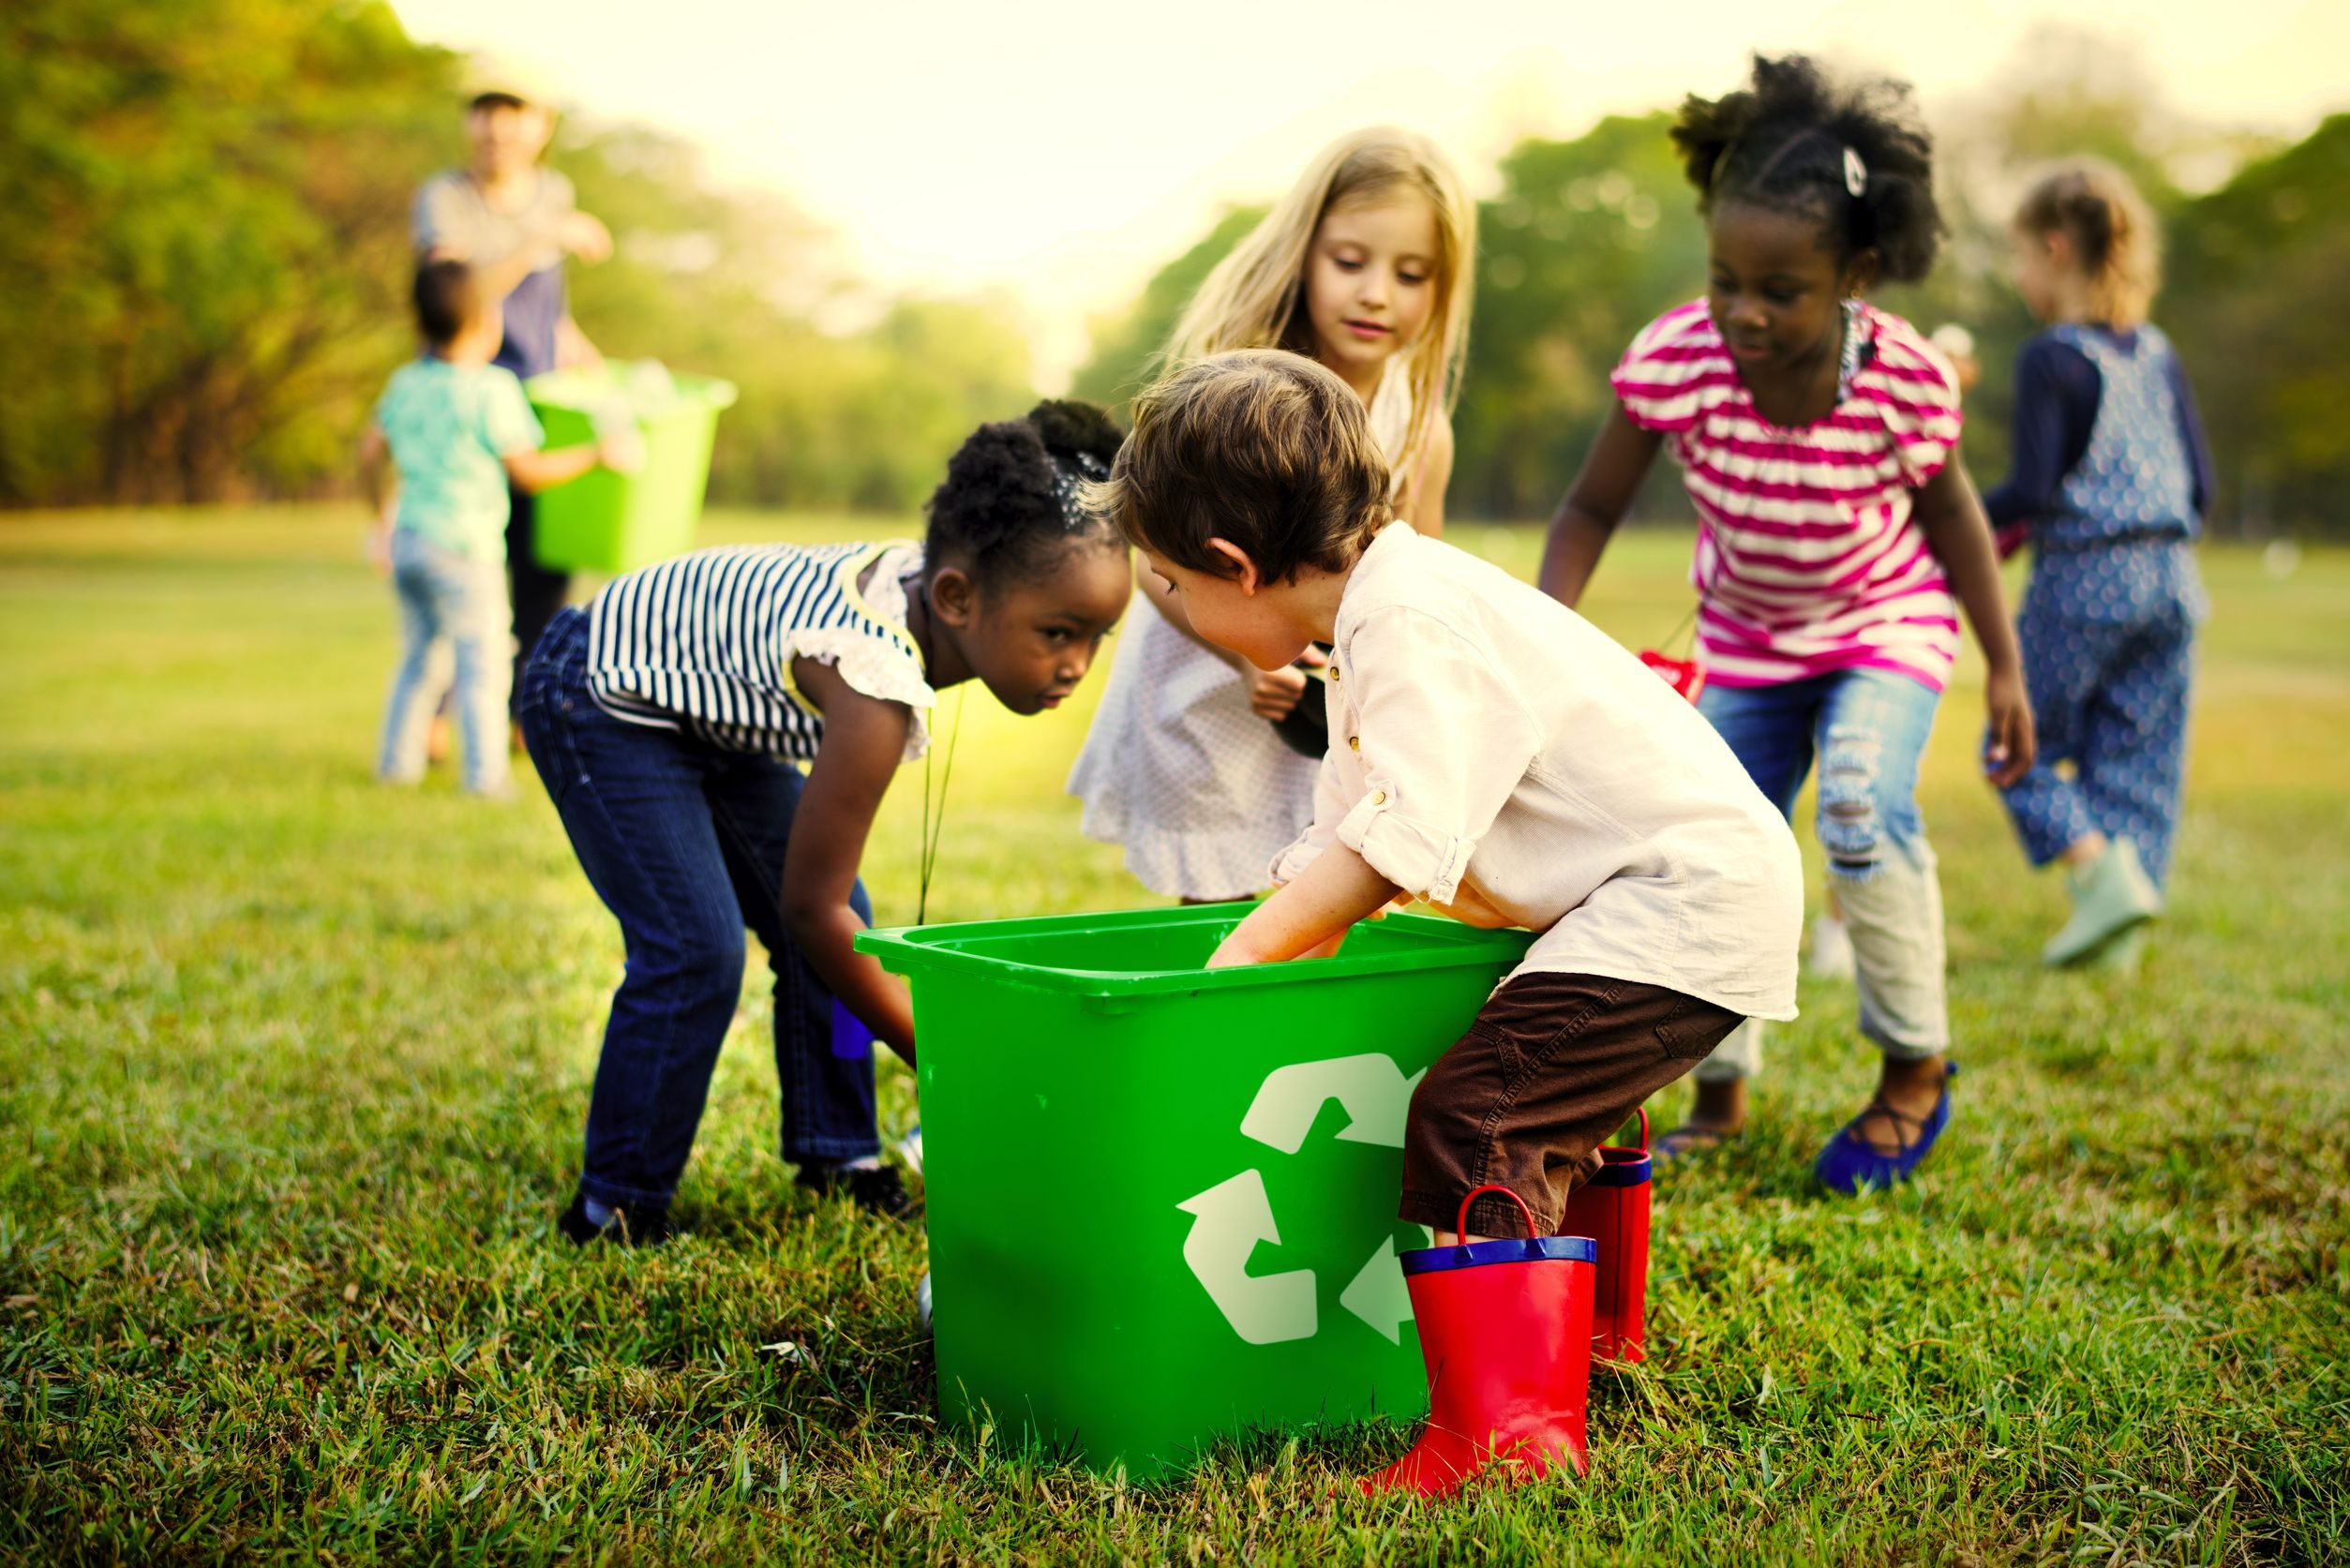 Kids learning how to recycle trash